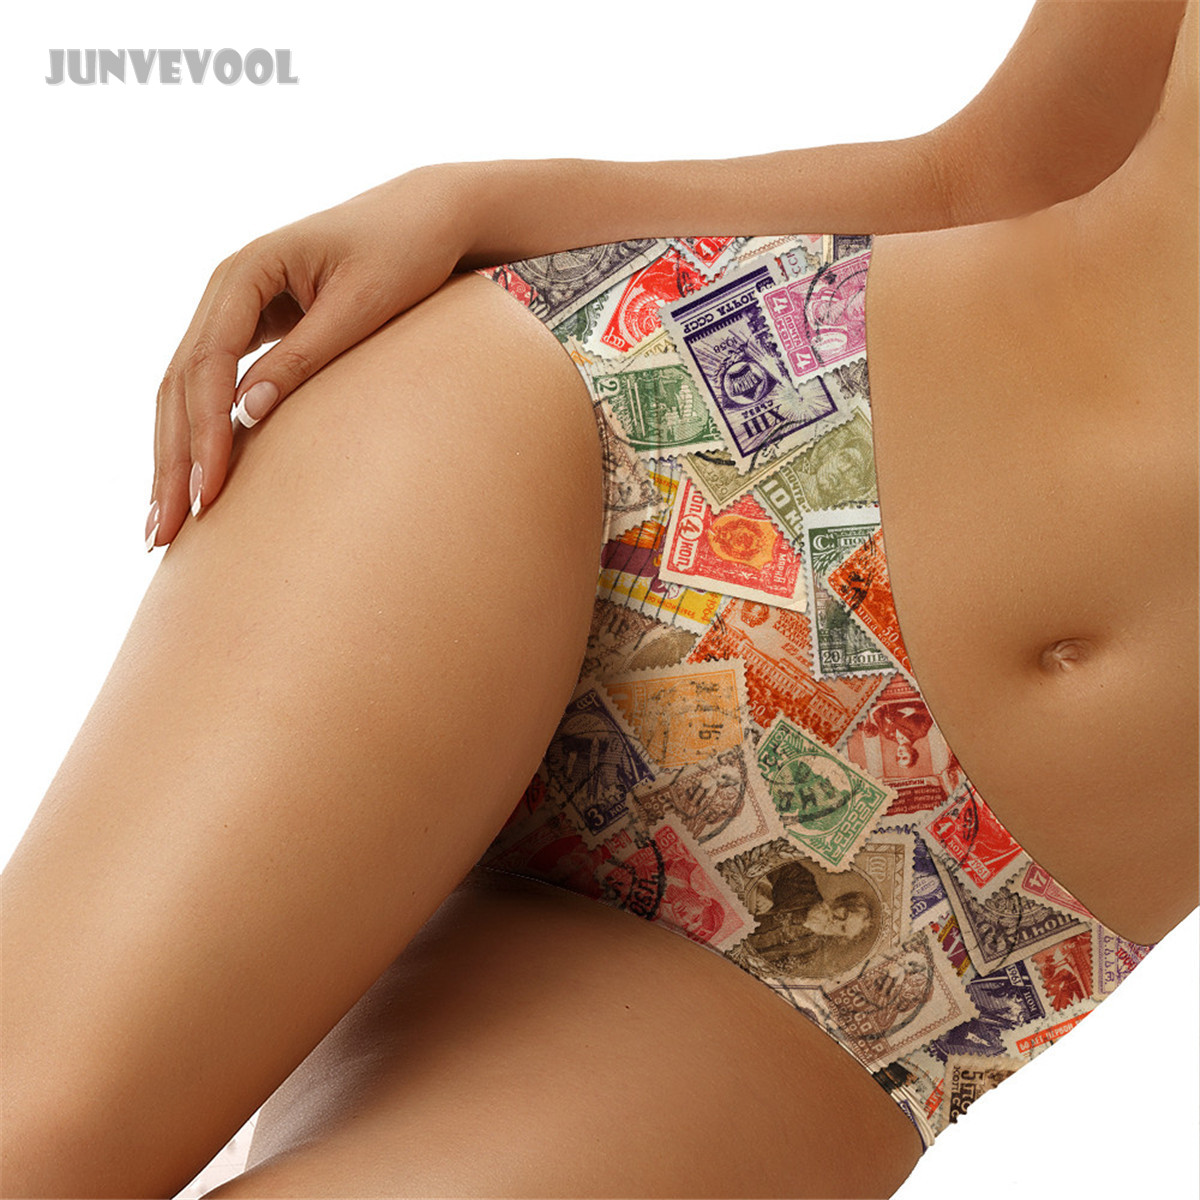 Buy Lingerie Sexy 2018 Fashion Women Knickers Hot Sale Womens Panties 3D Stamp Collection Printed Tattoo Briefs Underwear Gift